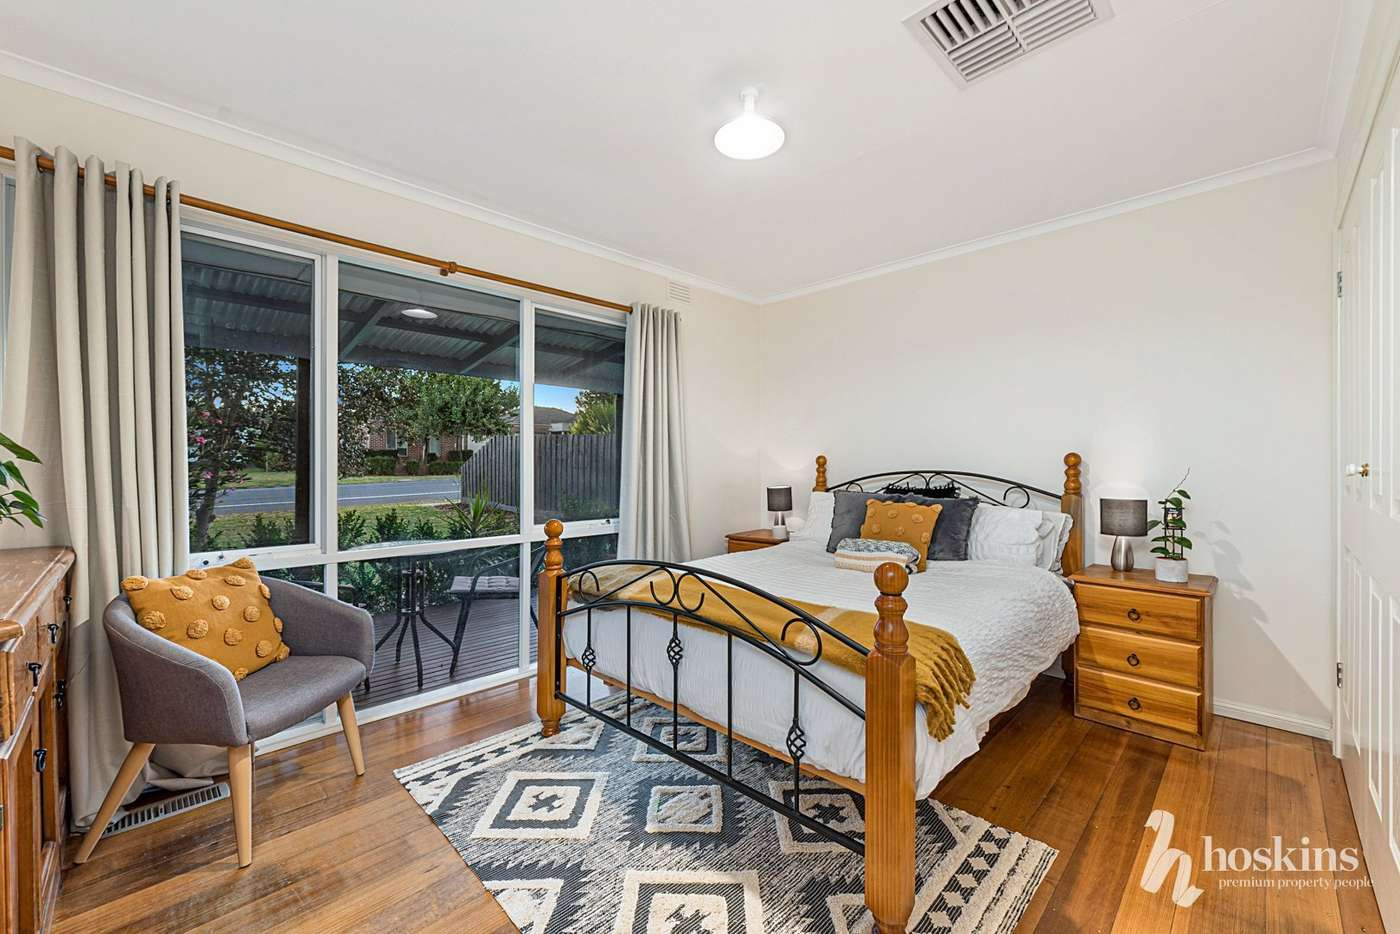 Fifth view of Homely house listing, 37 Beresford Road, Lilydale VIC 3140